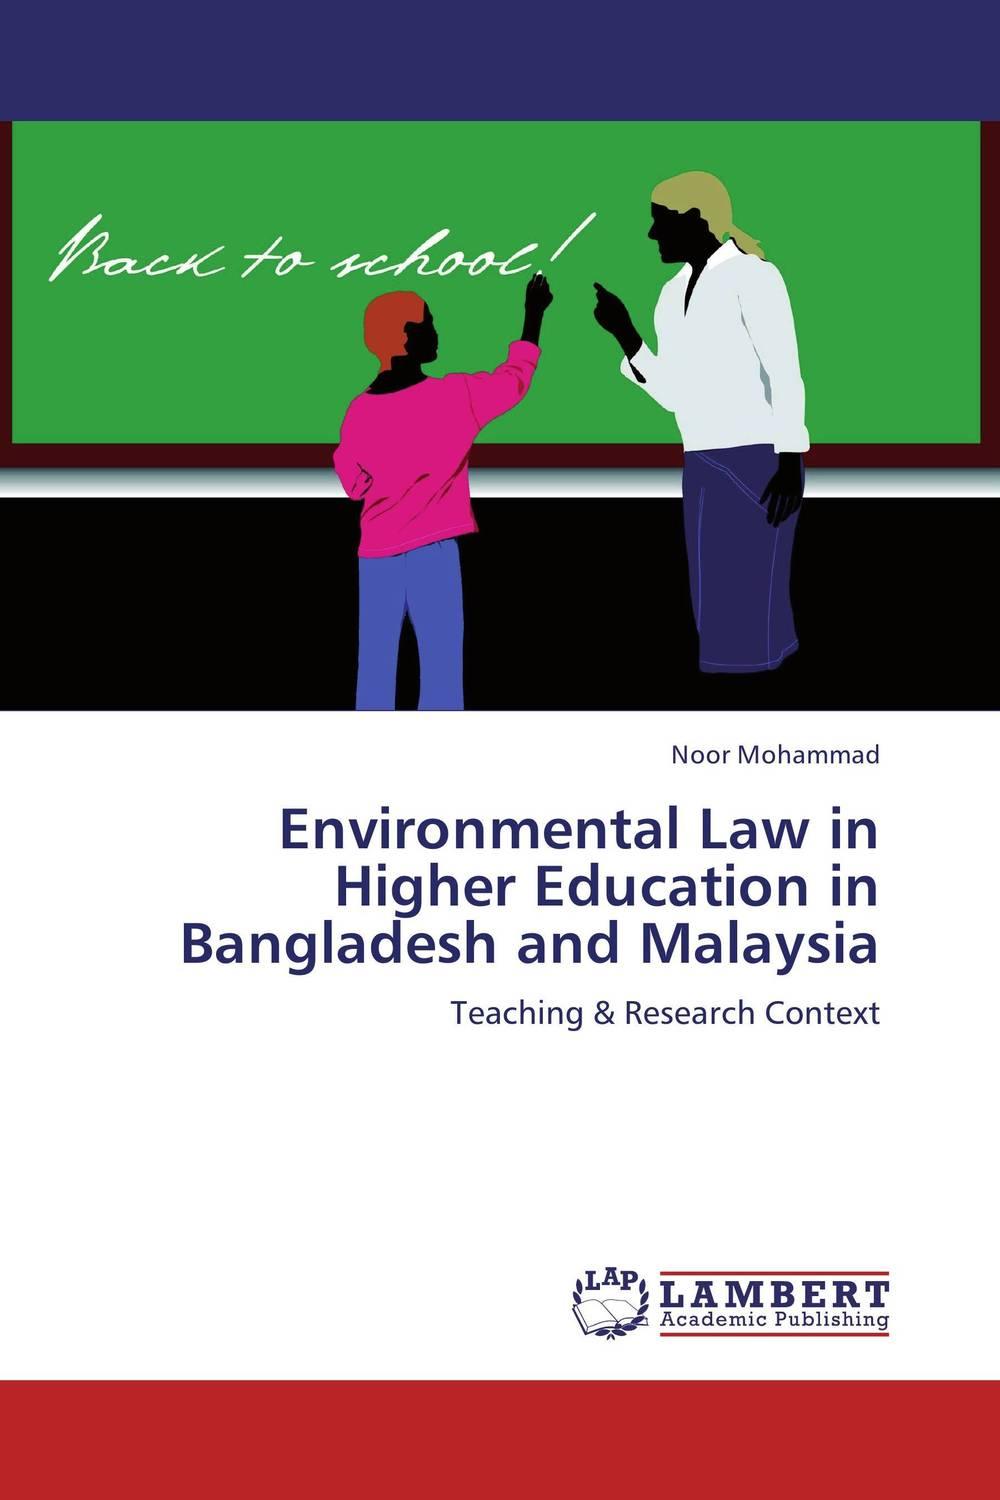 Environmental Law in Higher Education in Bangladesh and Malaysia private higher education institution using the tpack model in malaysia